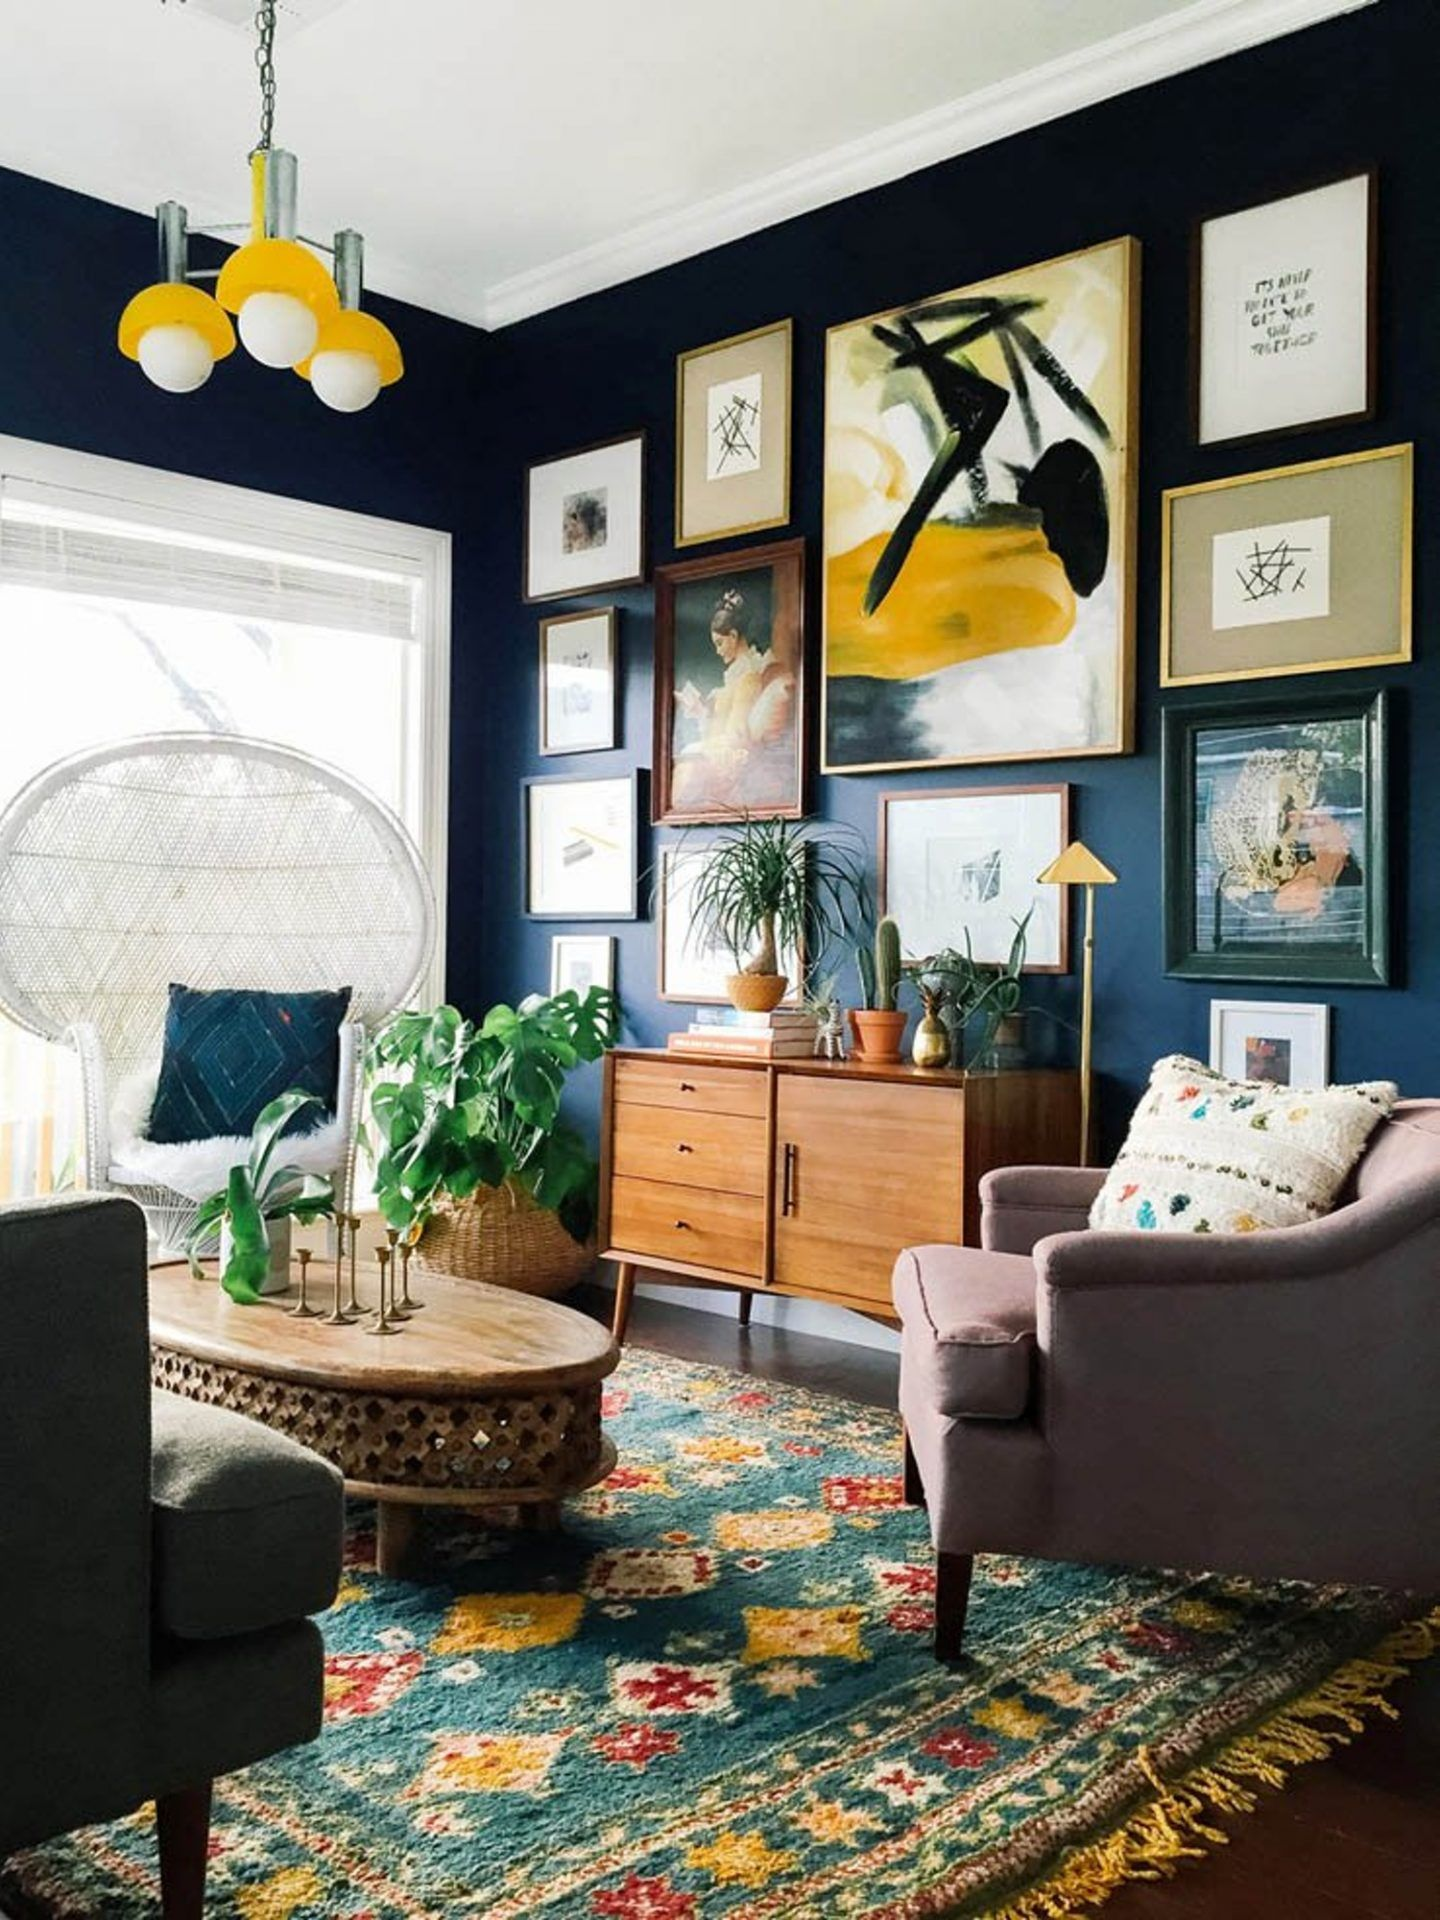 Make way for eclectic home décor for the home pinterest living